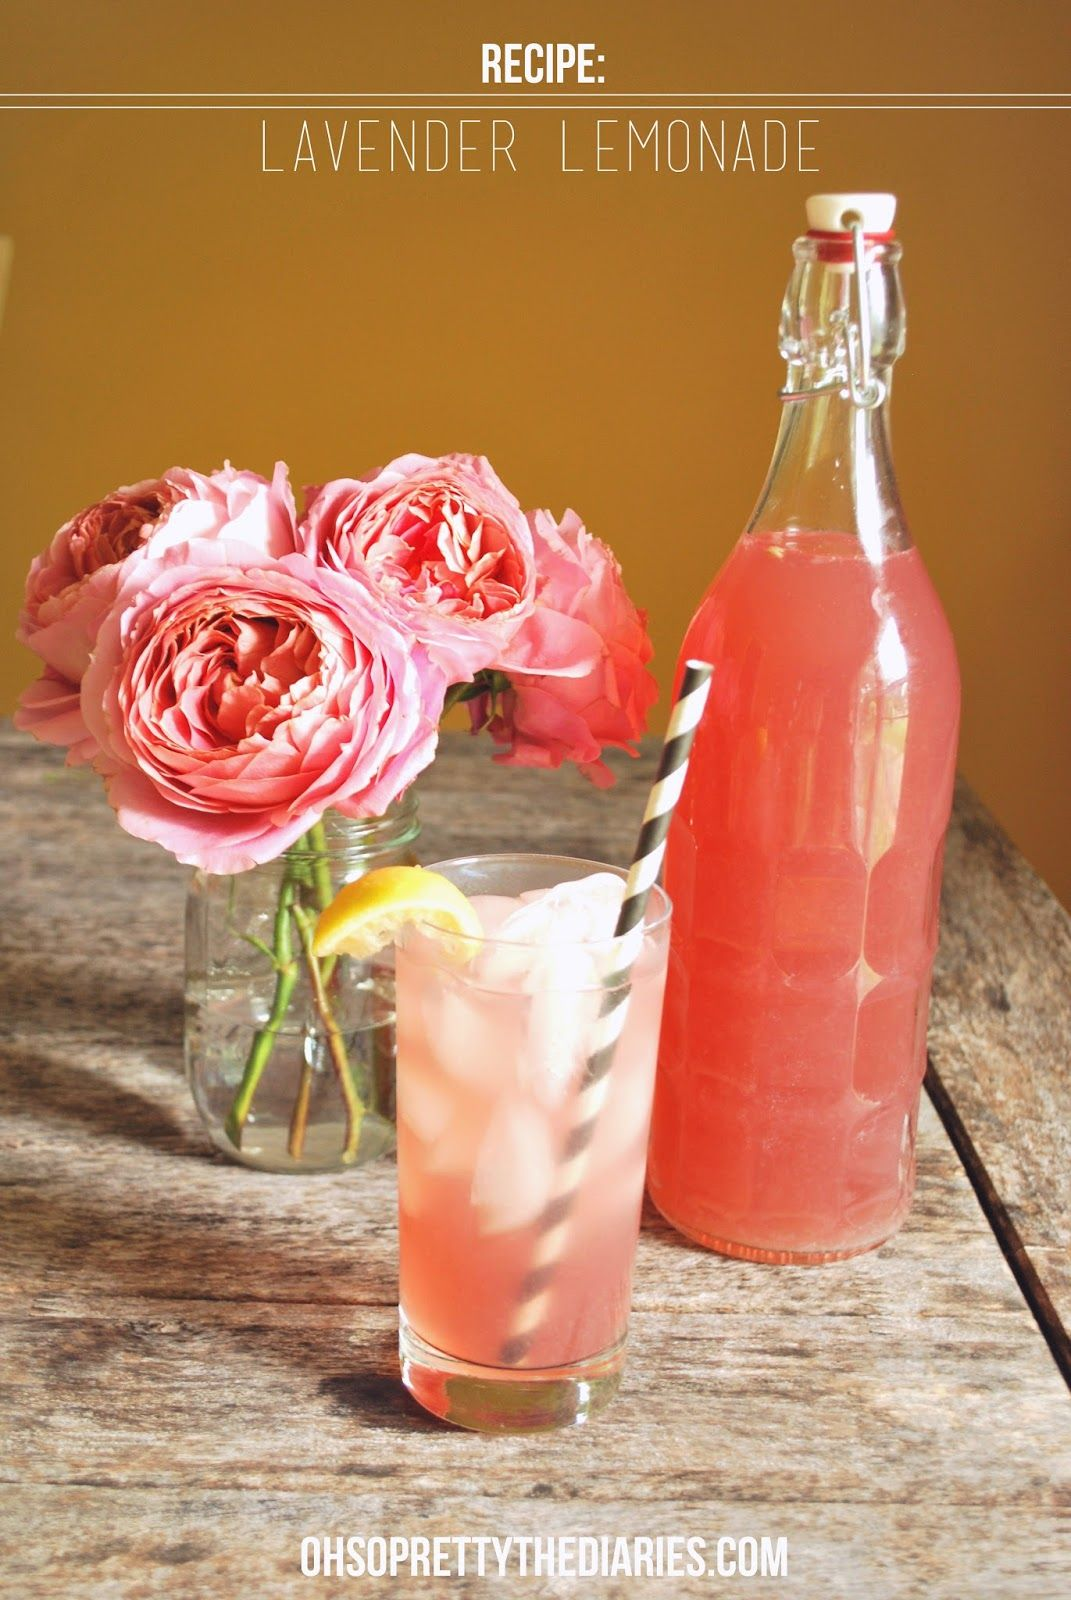 LAVENDER LEMONADE #recipe #drinks